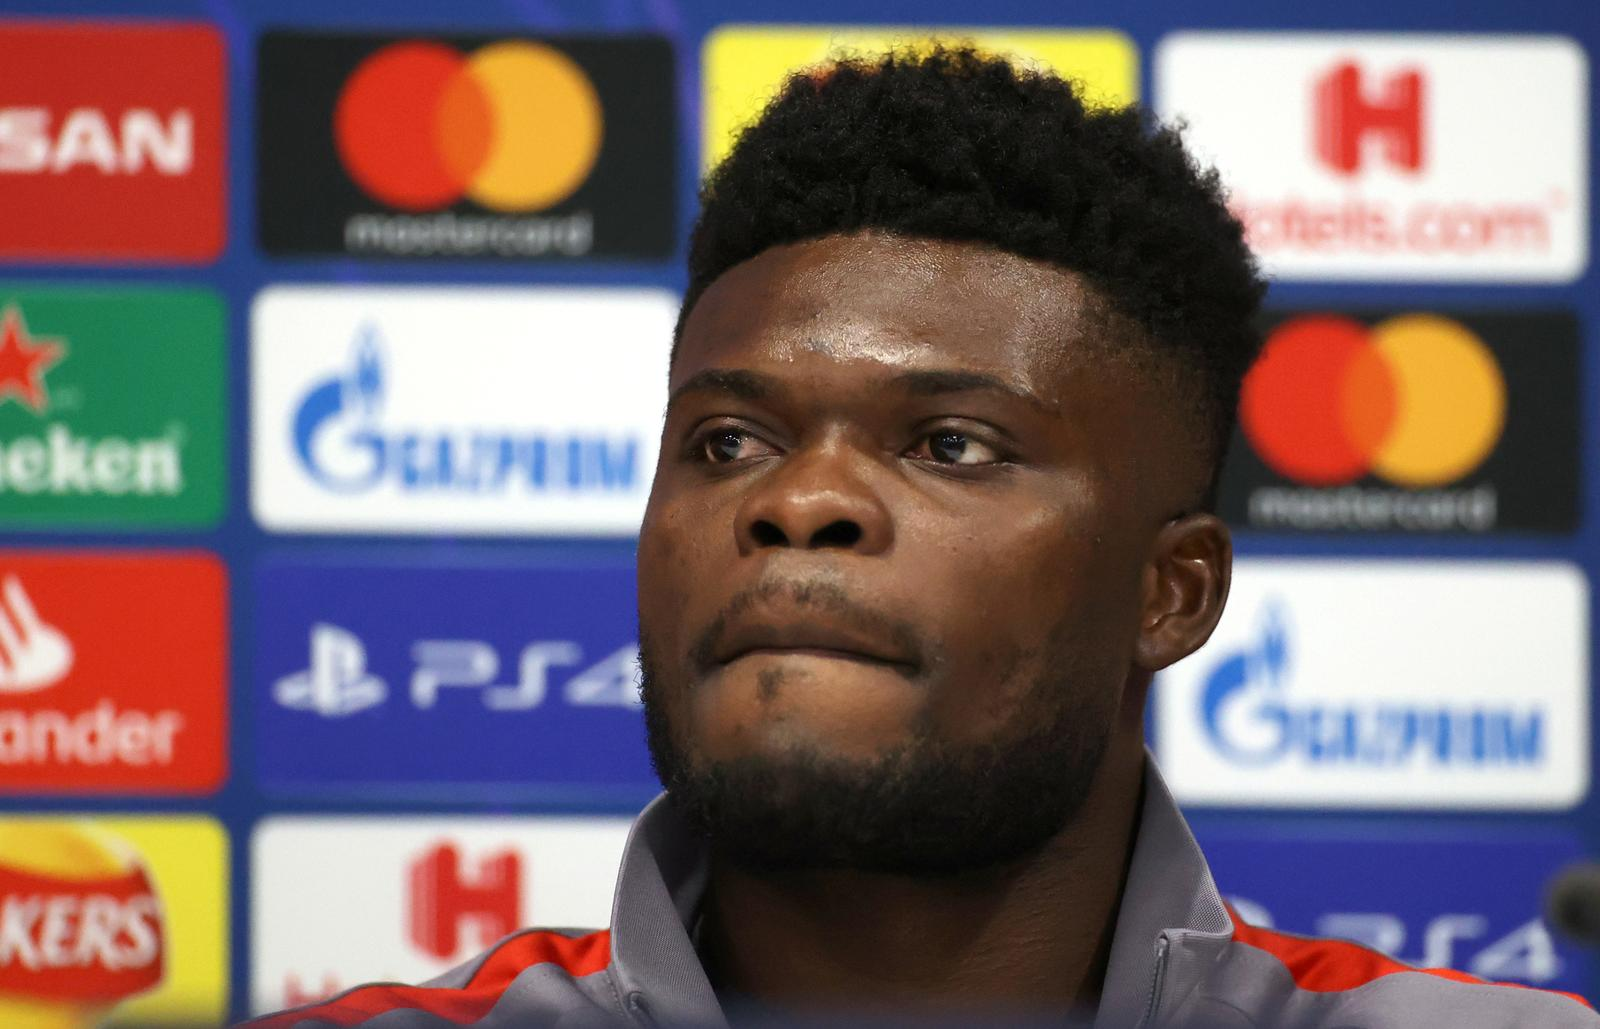 Atletico Madrid's Thomas Partey during the press conference - Champions League - Atletico Madrid Press Conference & Training - Anfield, Liverpool, Britain - March 10, 2020. Photo: Reuters